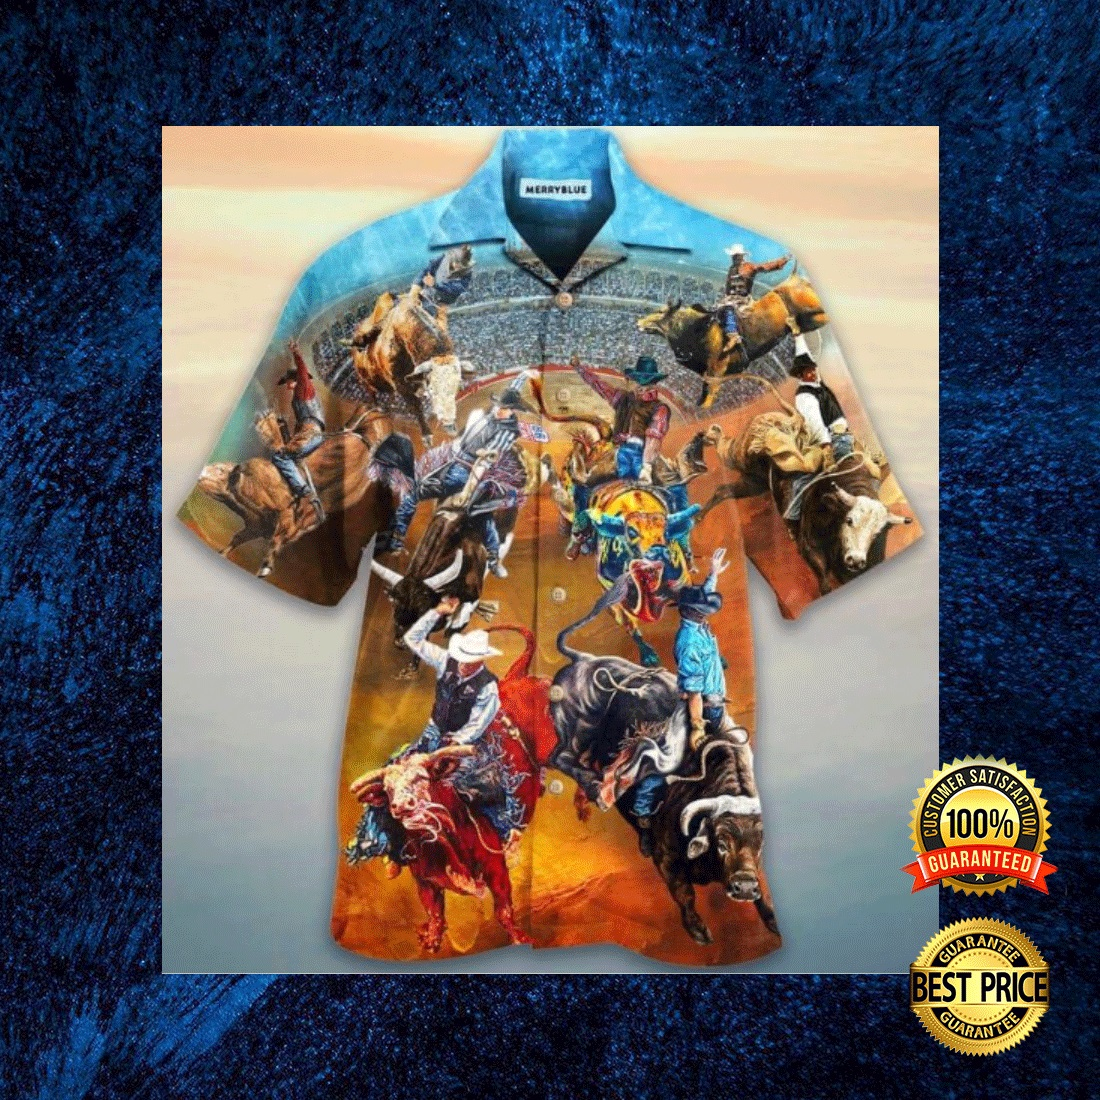 RODEO LIFE IS THE BEST LIFE HAWAIIAN SHIRT 4